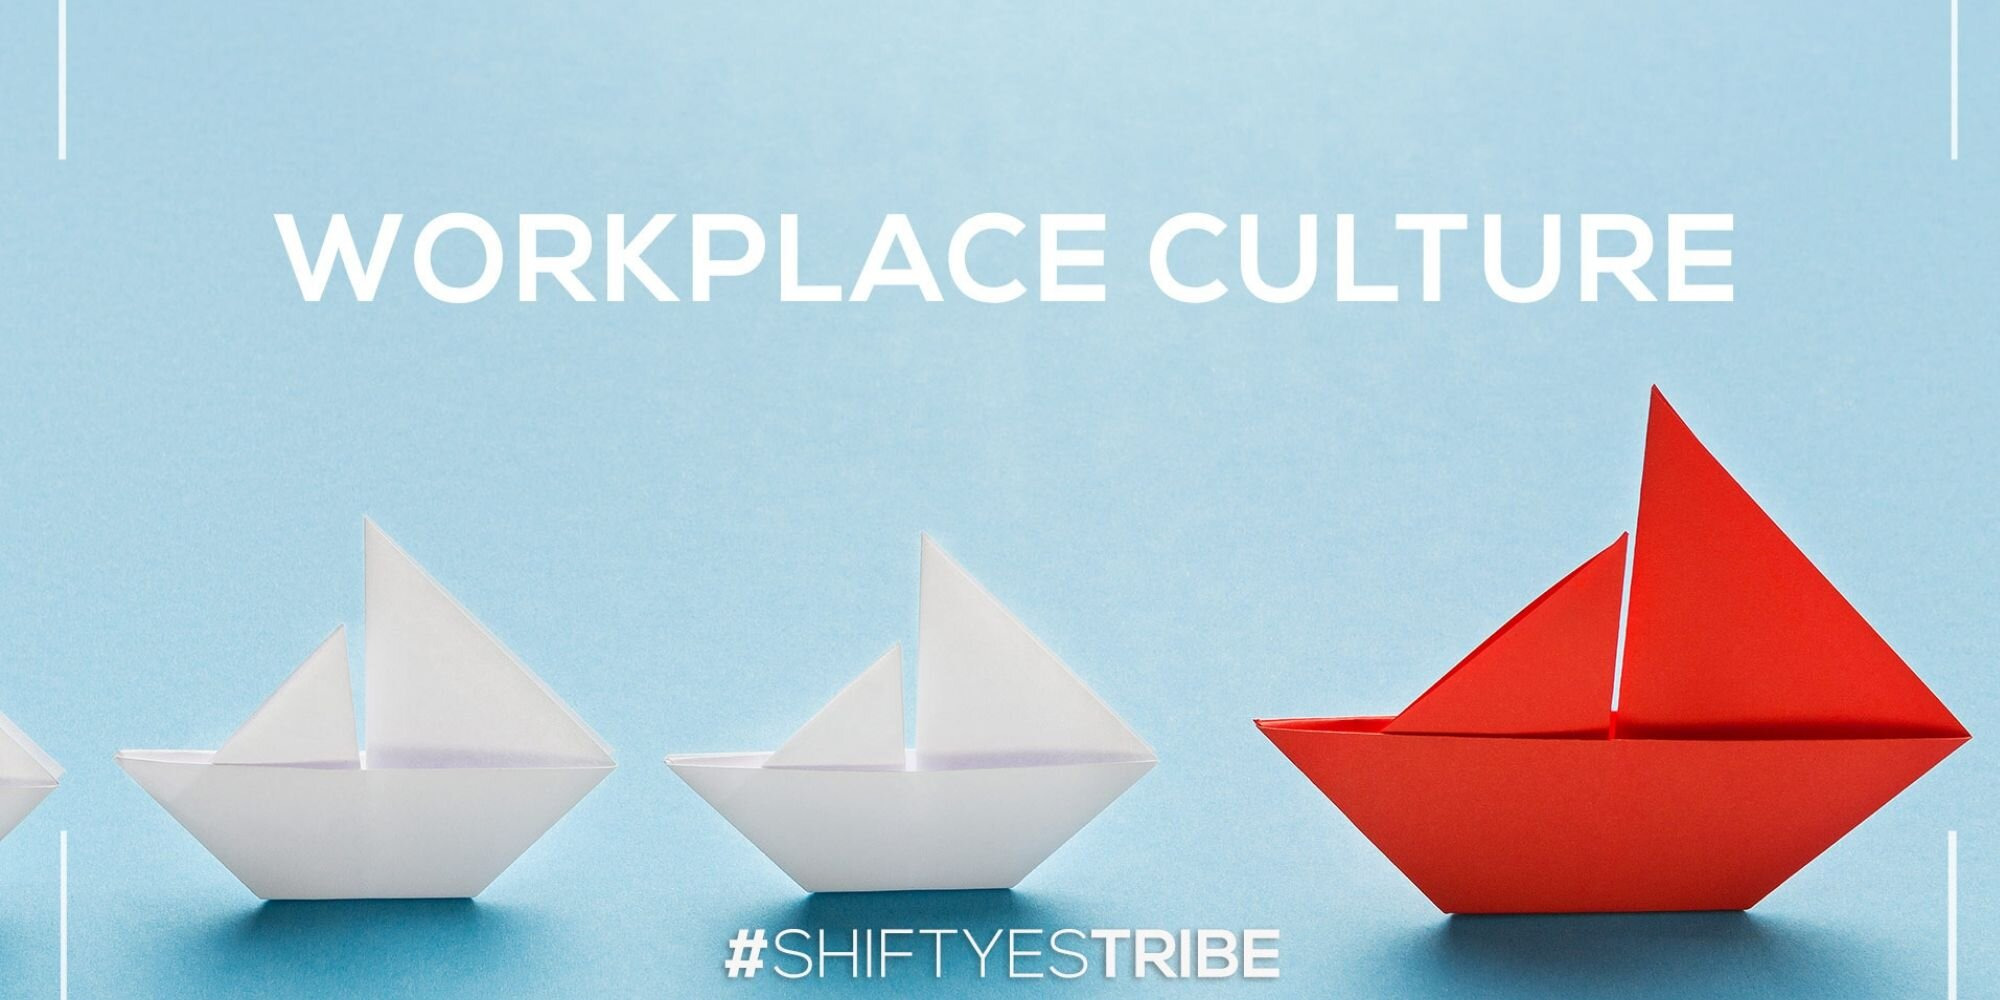 Galen Emanuele #shiftyestribe Shift Yes Tribe Workplace Culture April 2019.jpg